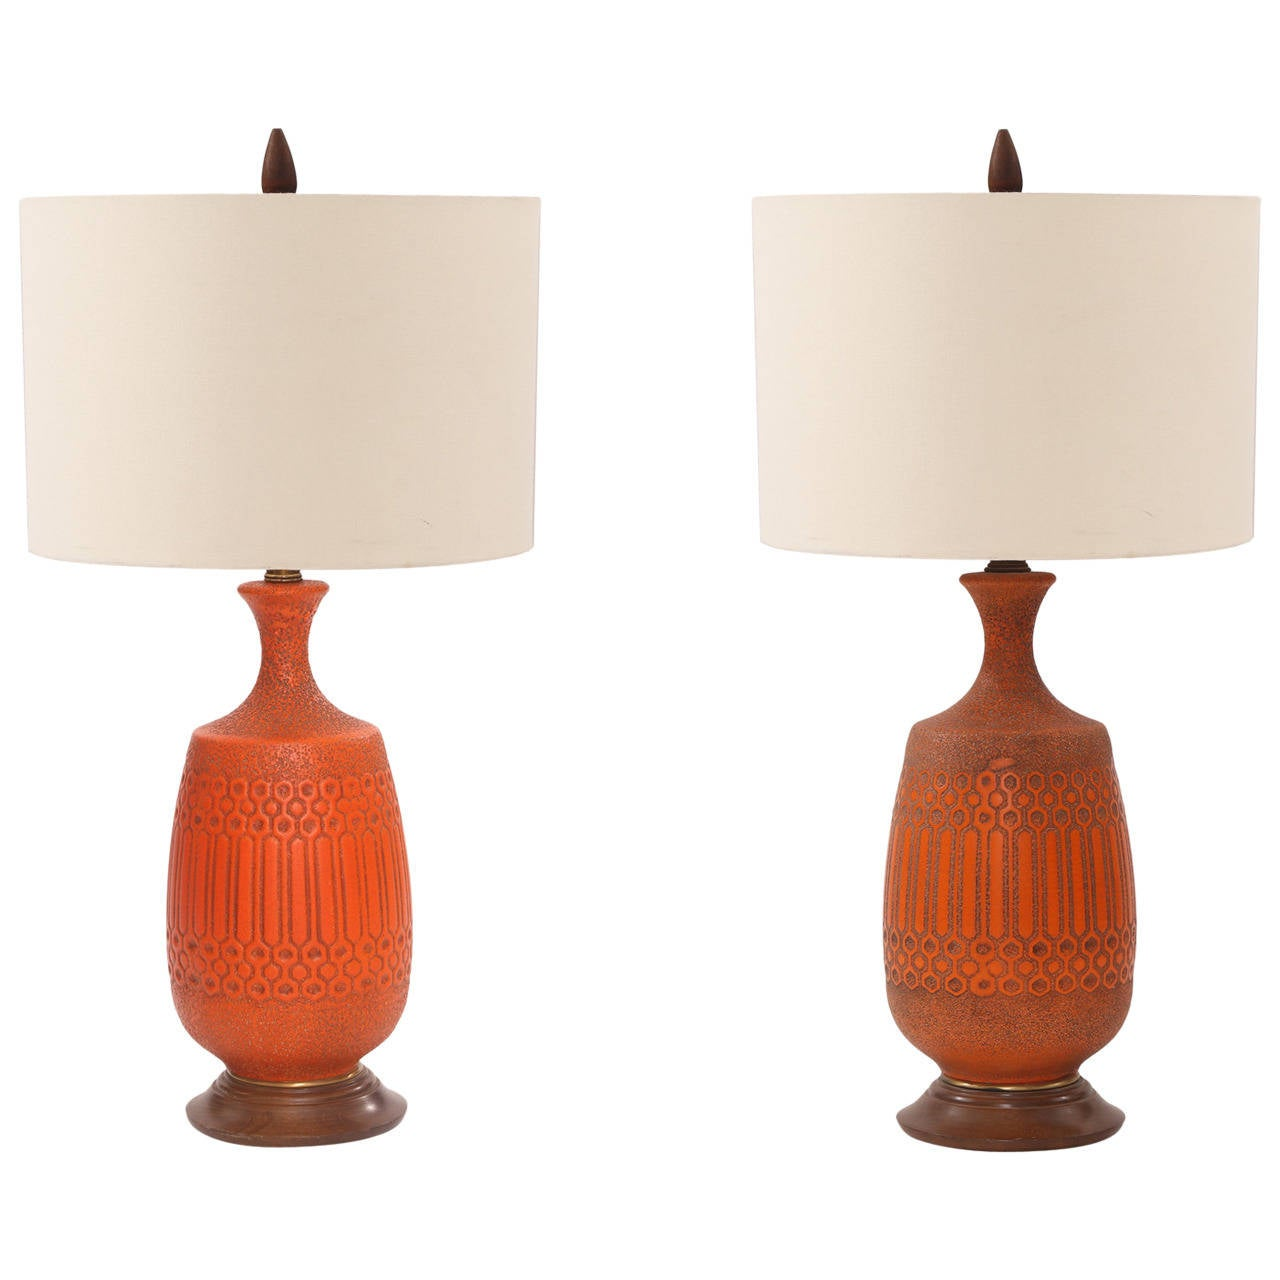 Walnut Table Lamp Image Collections Coffee Design